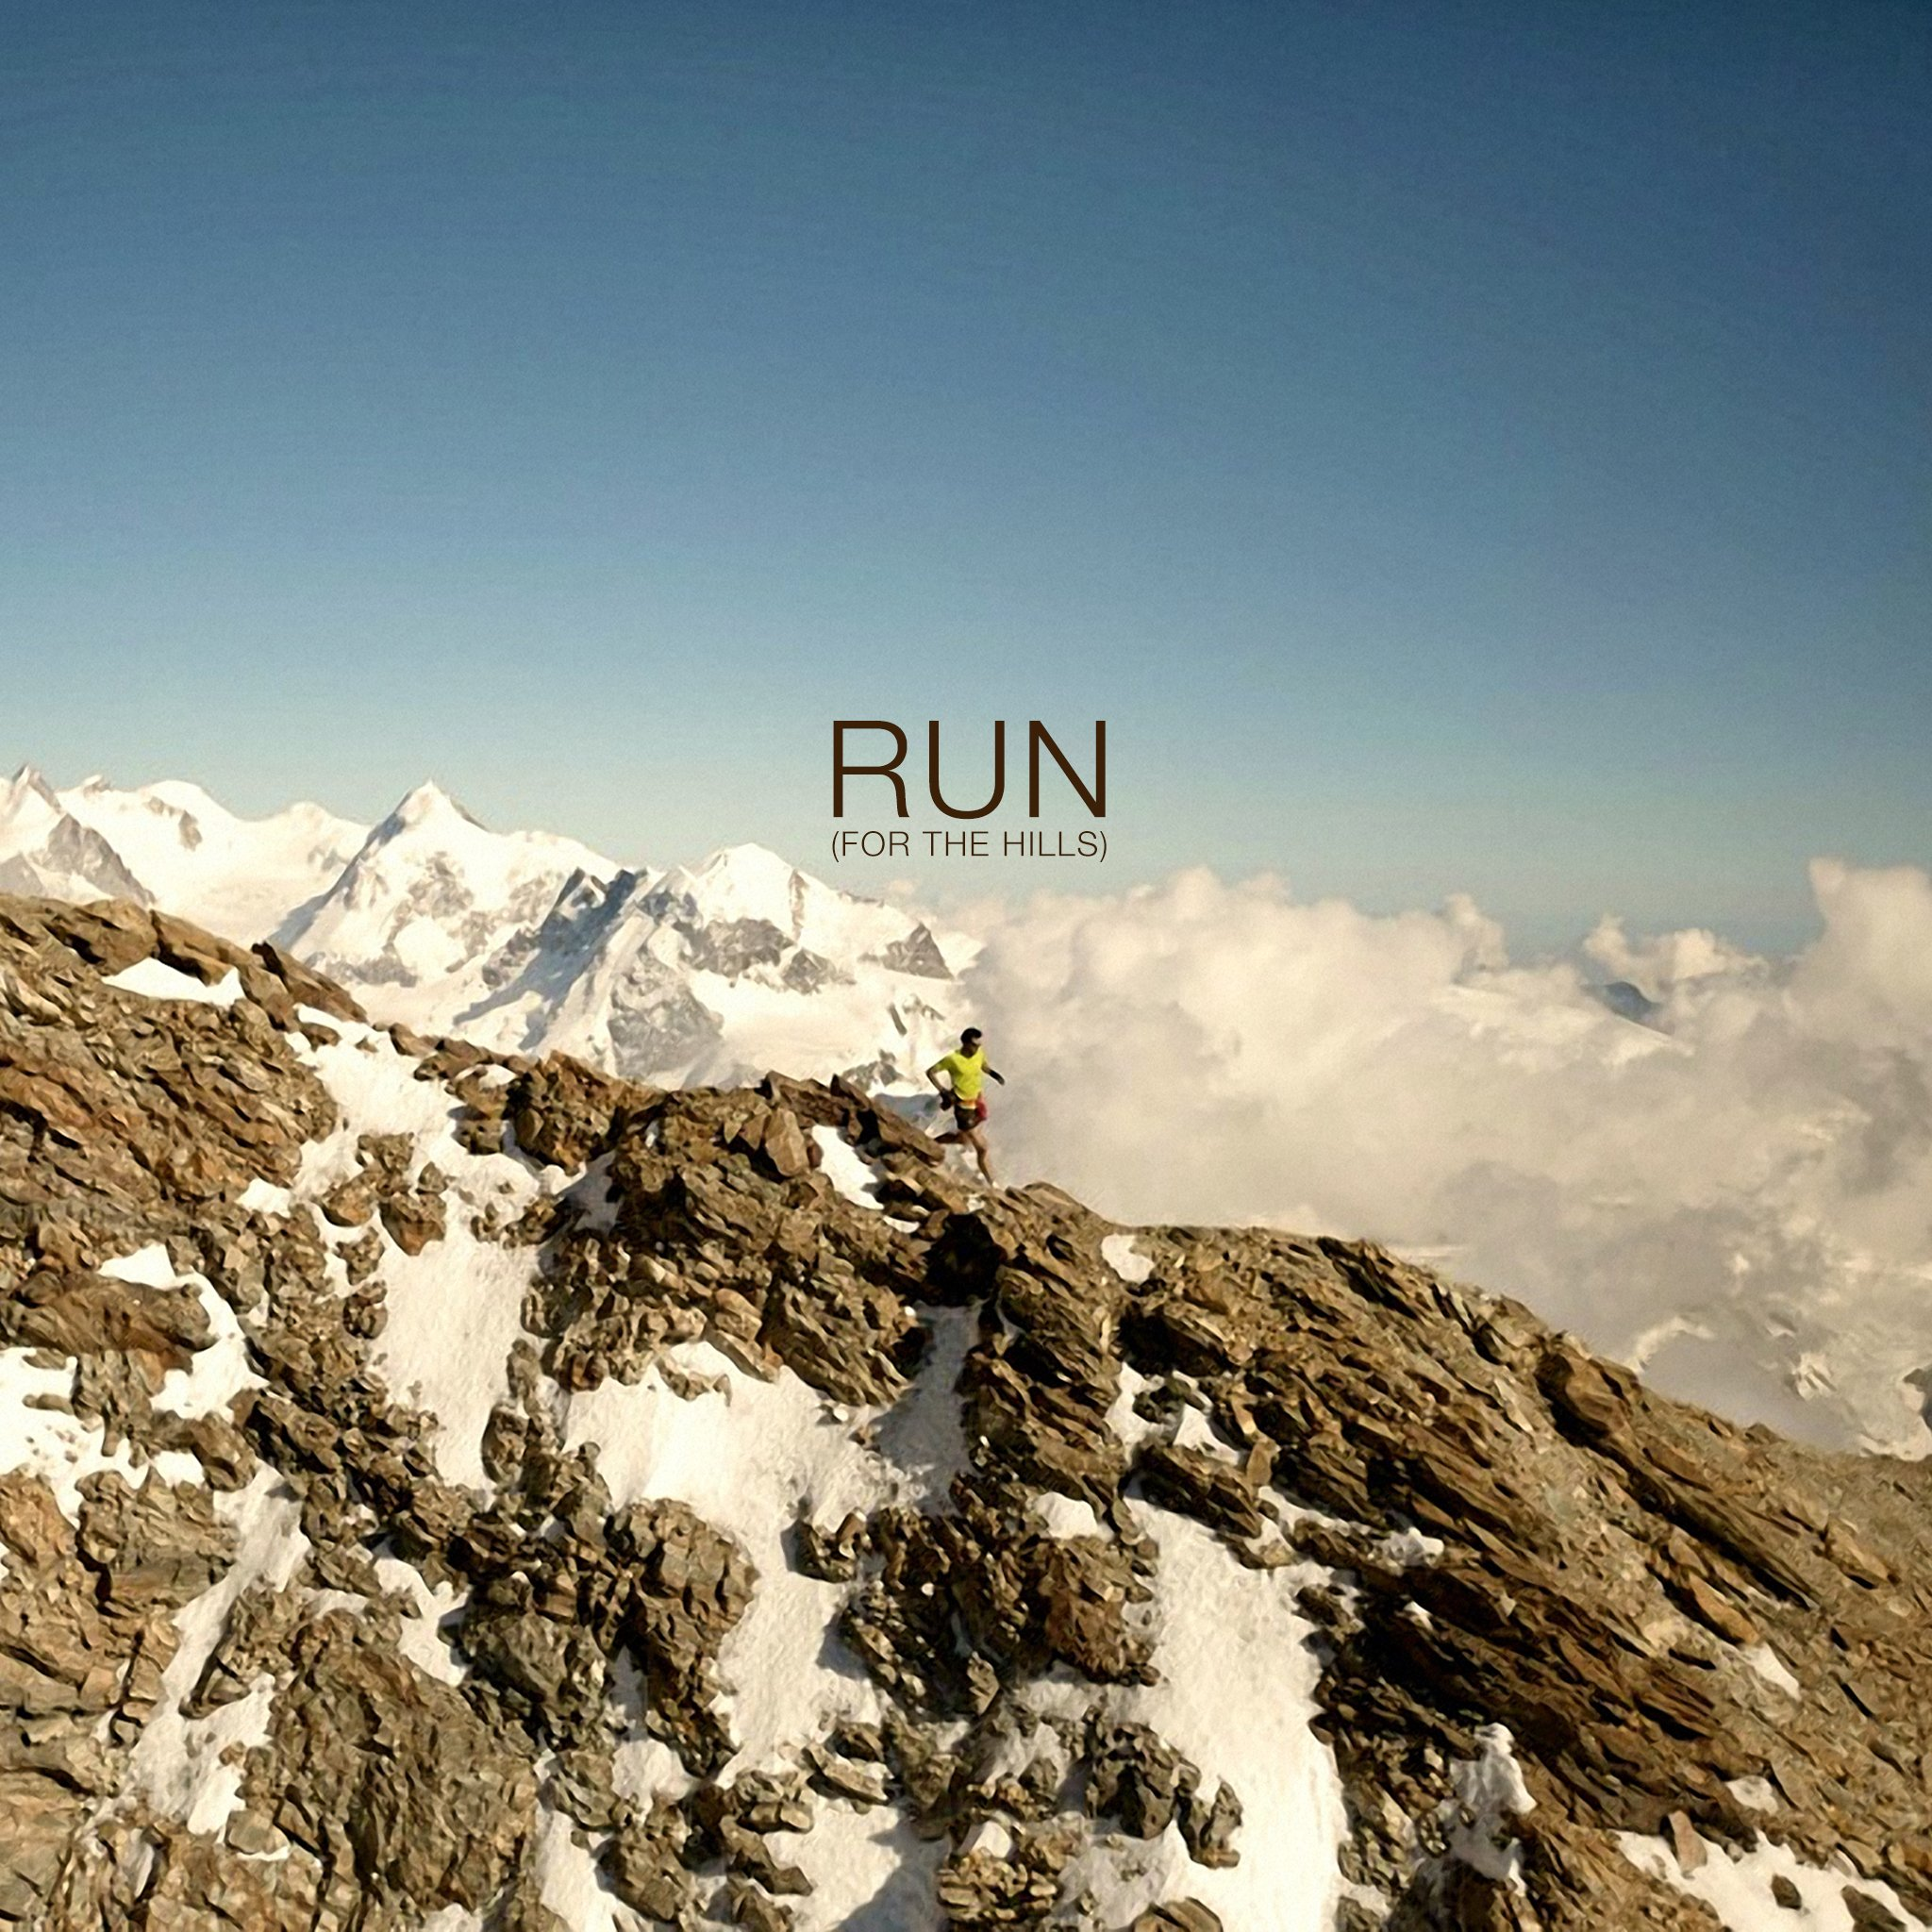 Ultra Running Wallpaper - WallpaperSafari